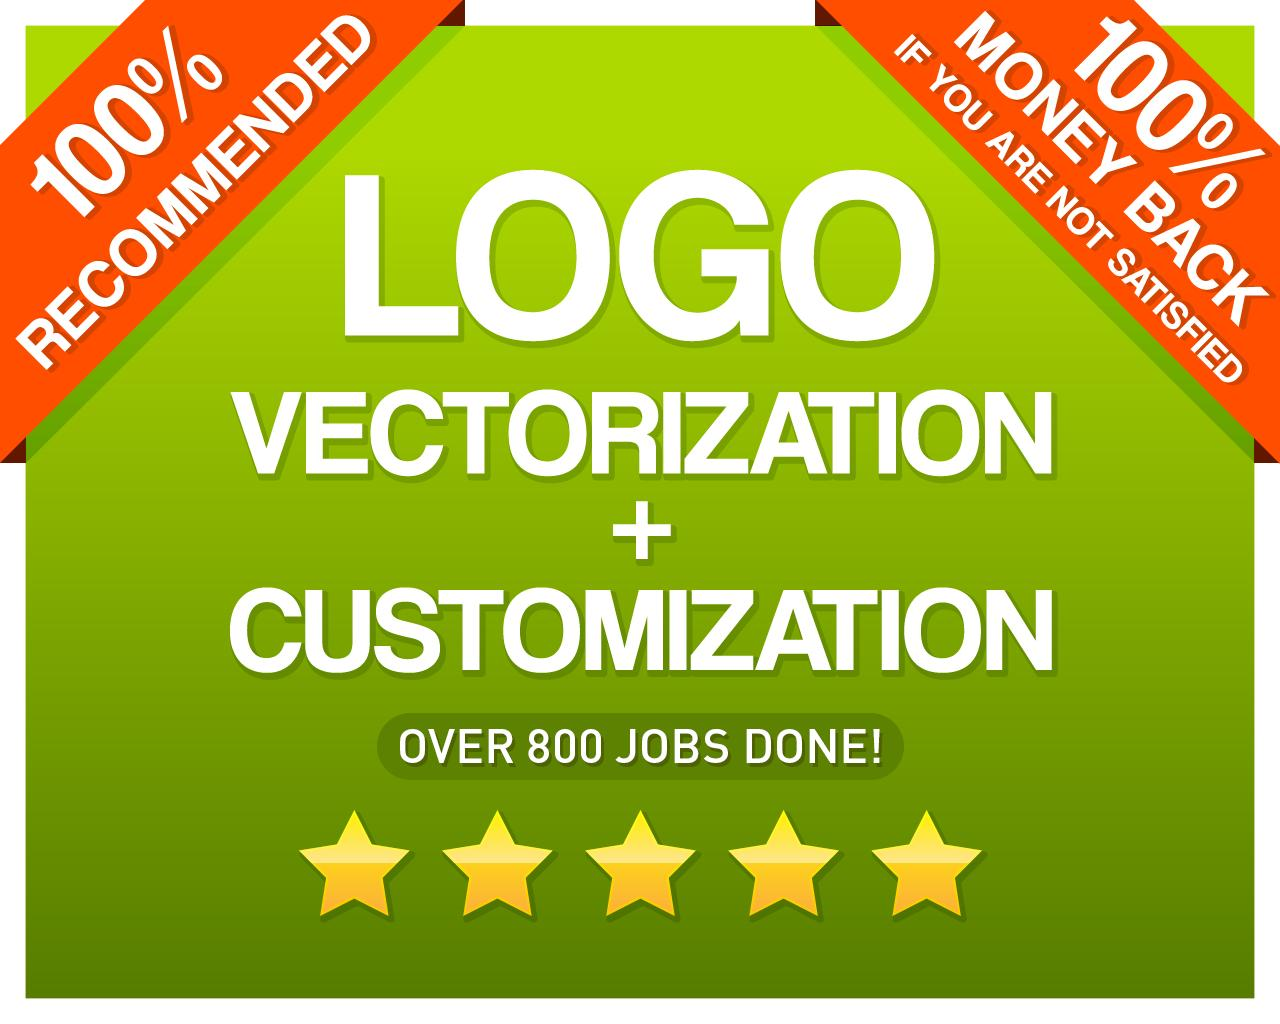 Logo Vectorization + Customization by CvLd_Design - 111015